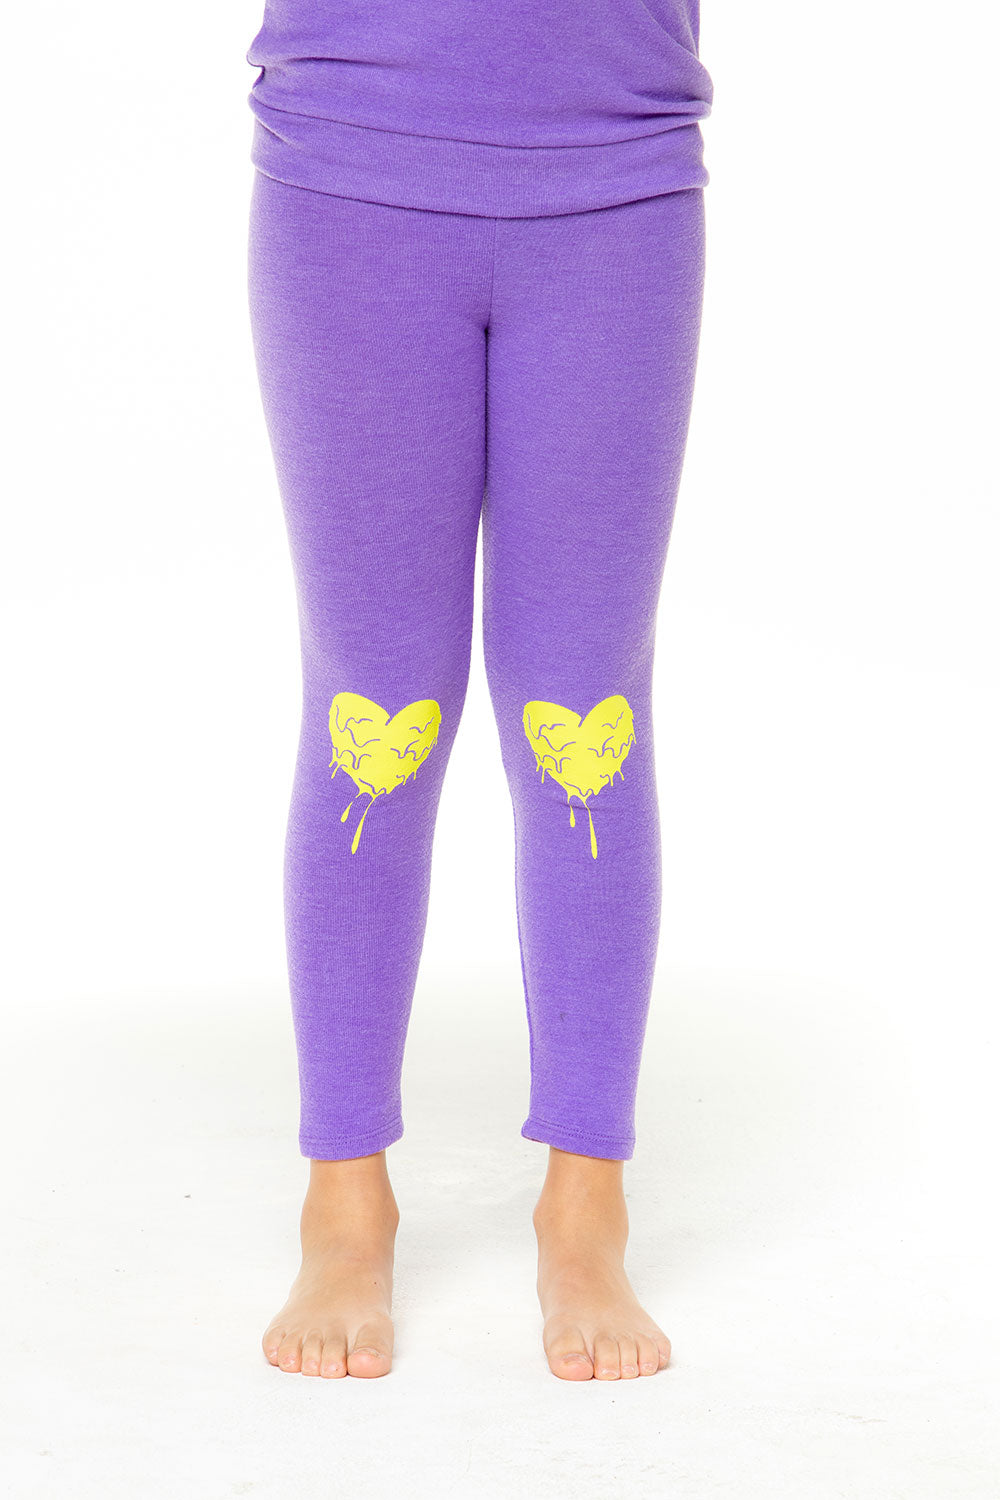 I Heart Slime Leggings GIRLS chaserbrand4.myshopify.com